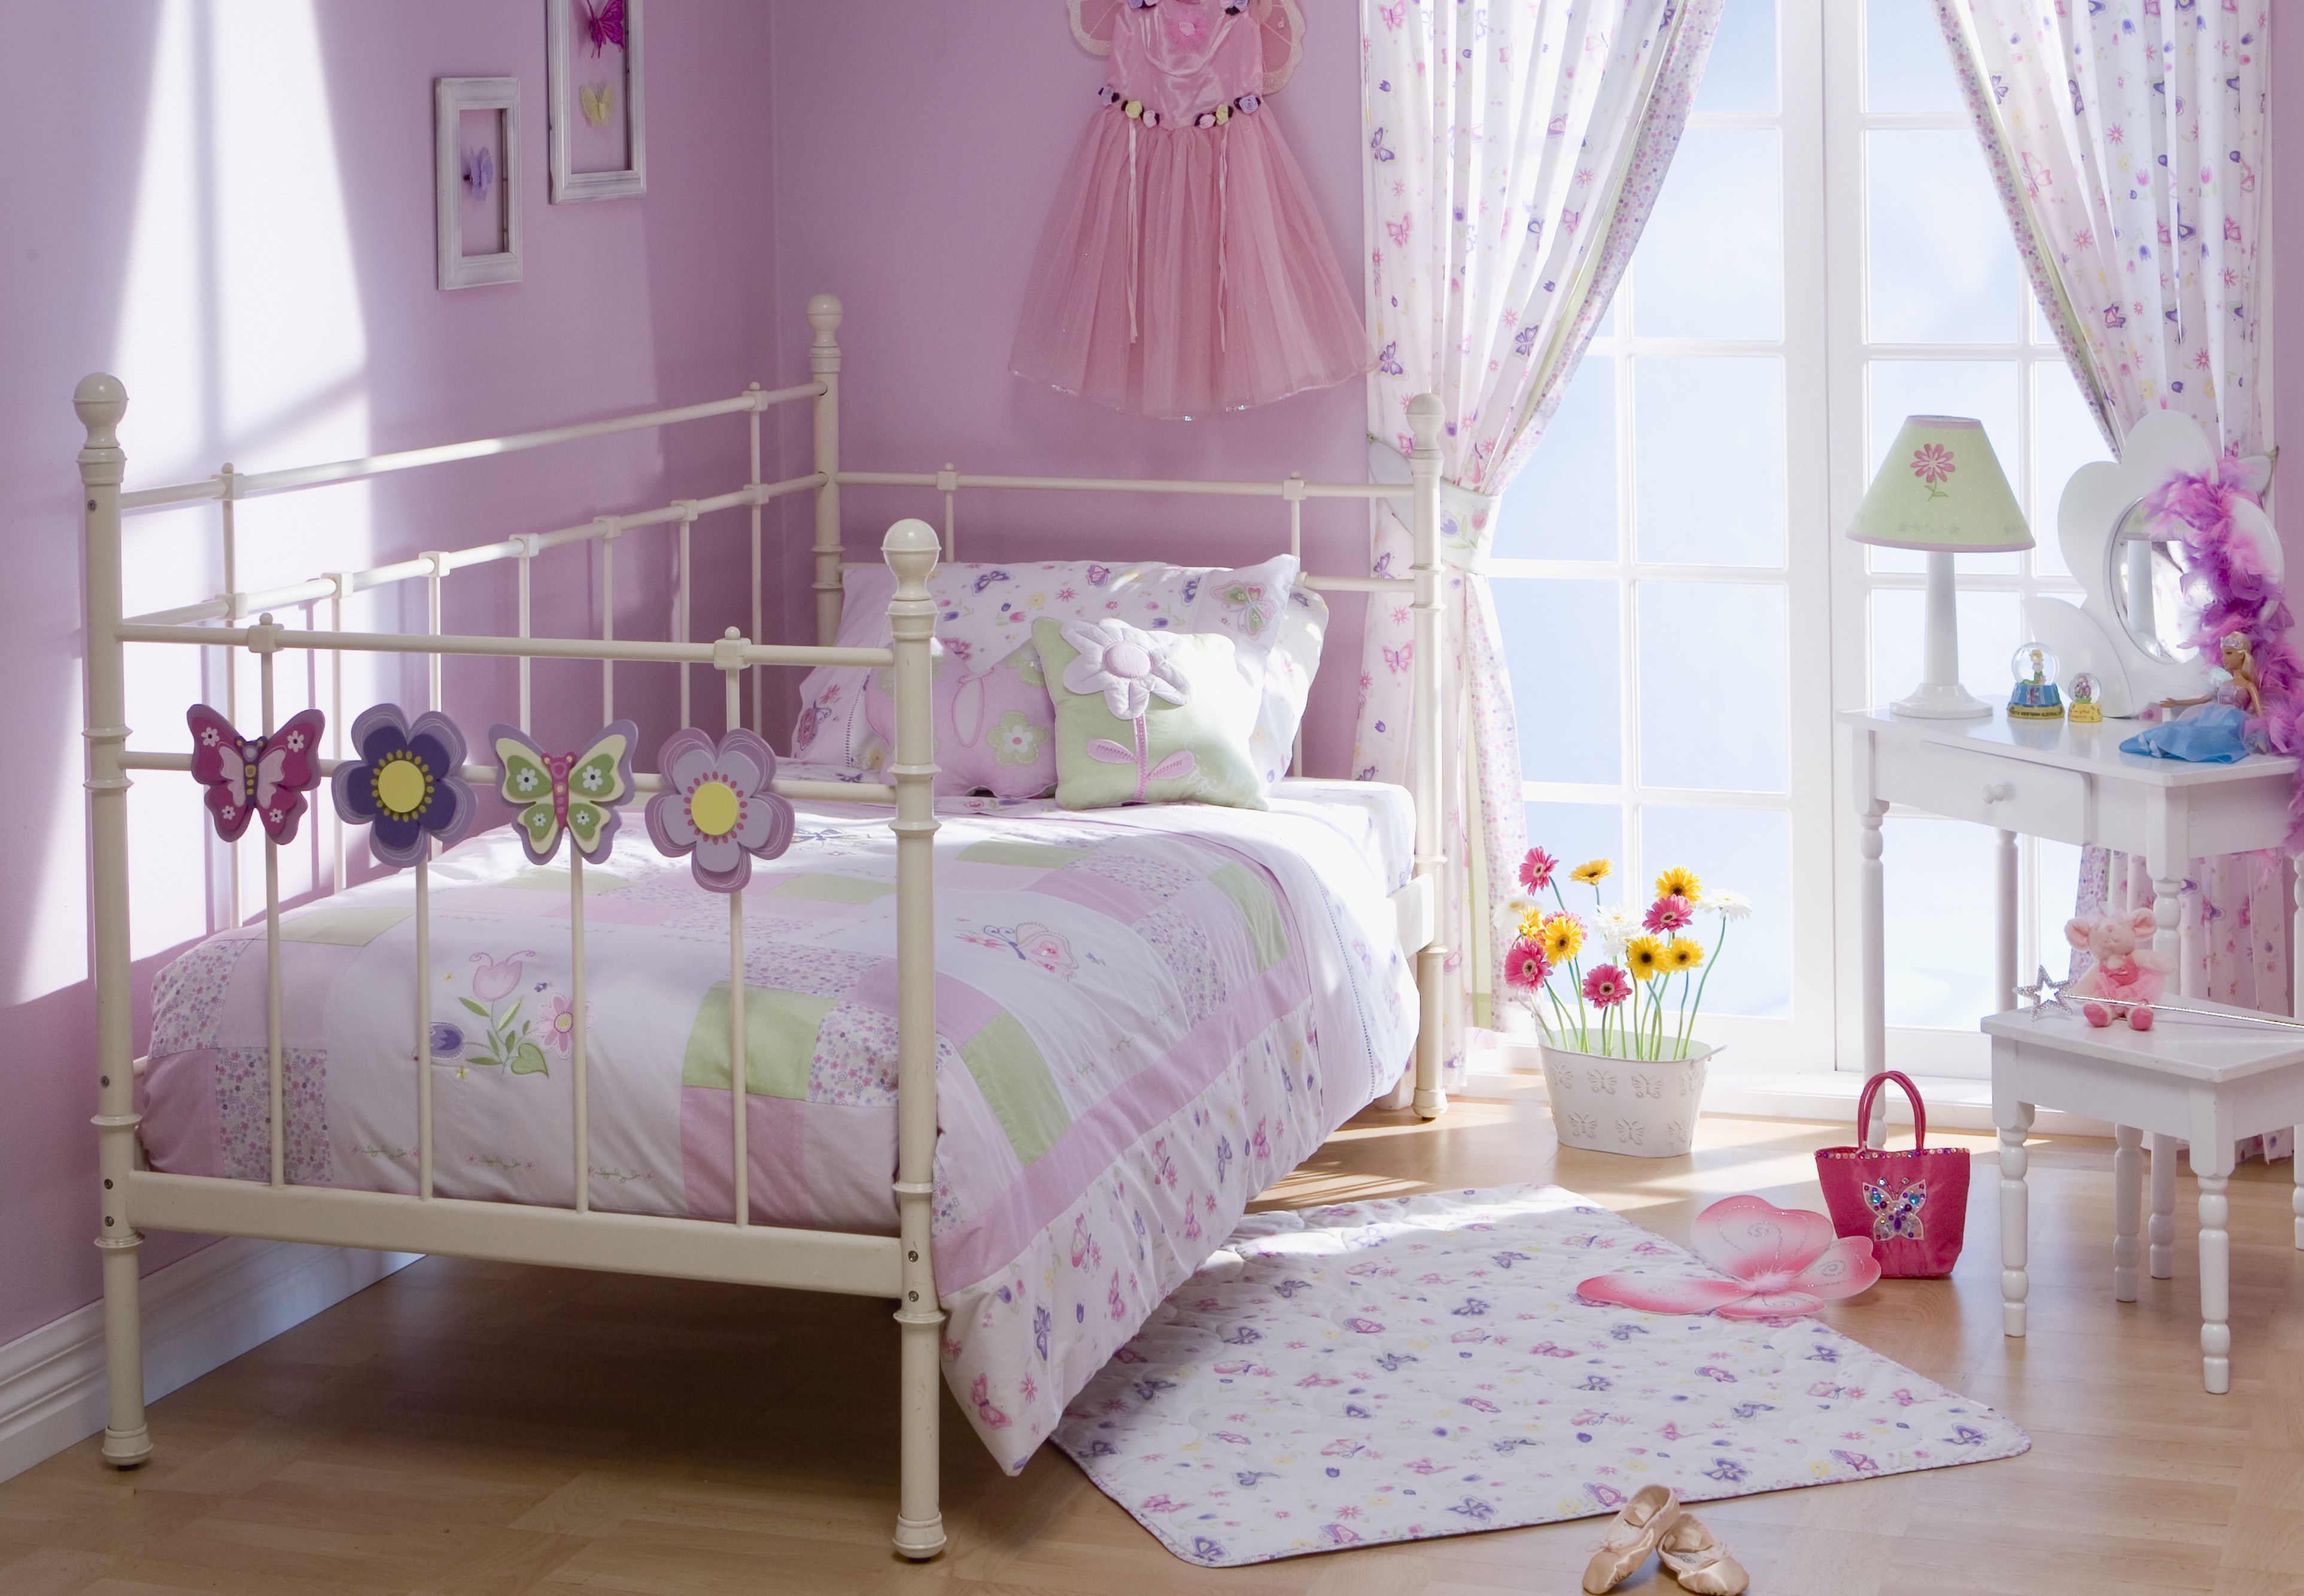 Delightful Pink Themes Design Room For Teenage Girls With Modern White Metal Bed Frame That Have